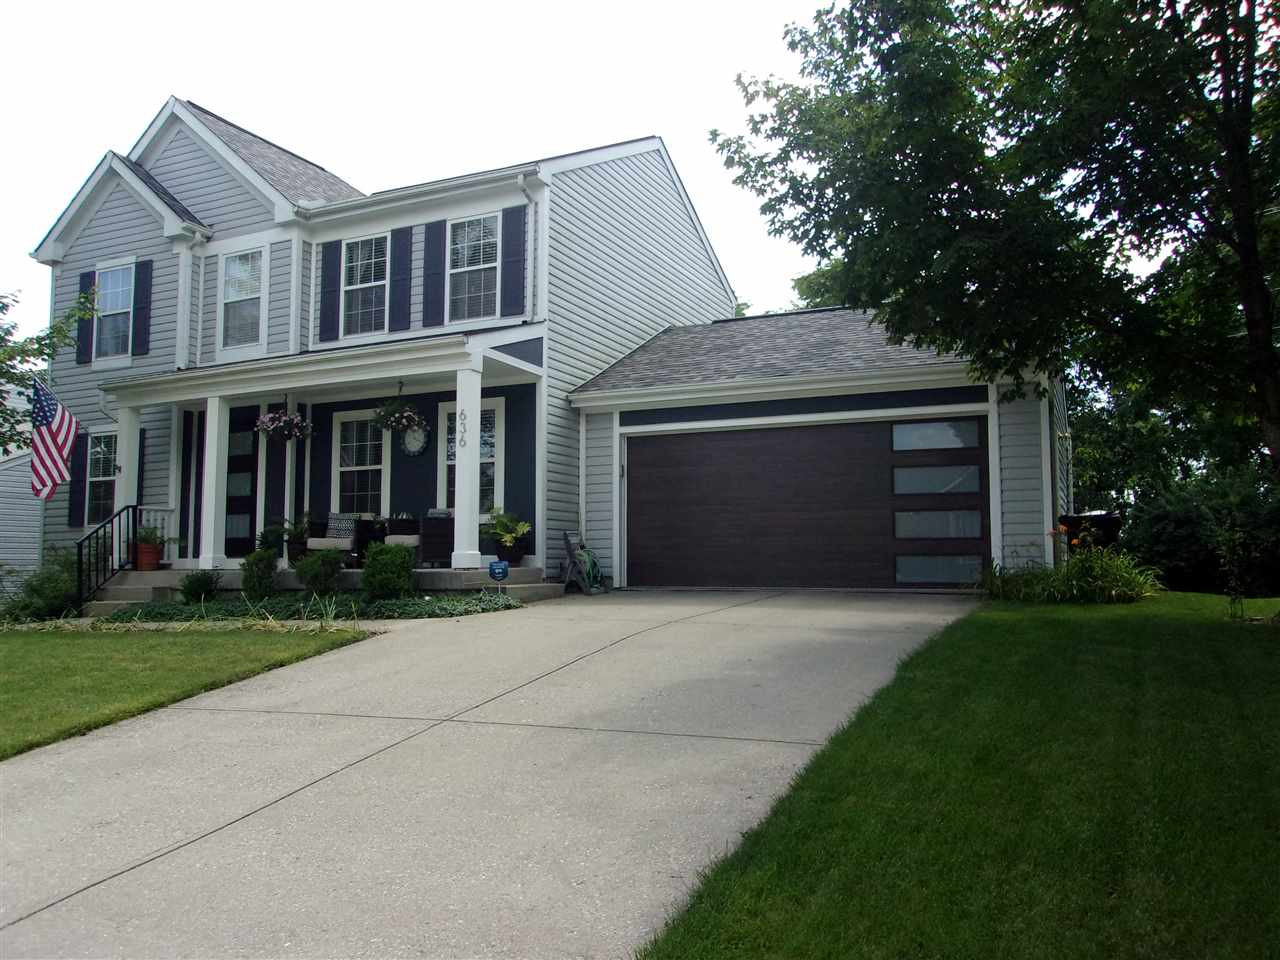 Photo 1 for 636 Grandview Ave Newport, KY 41071